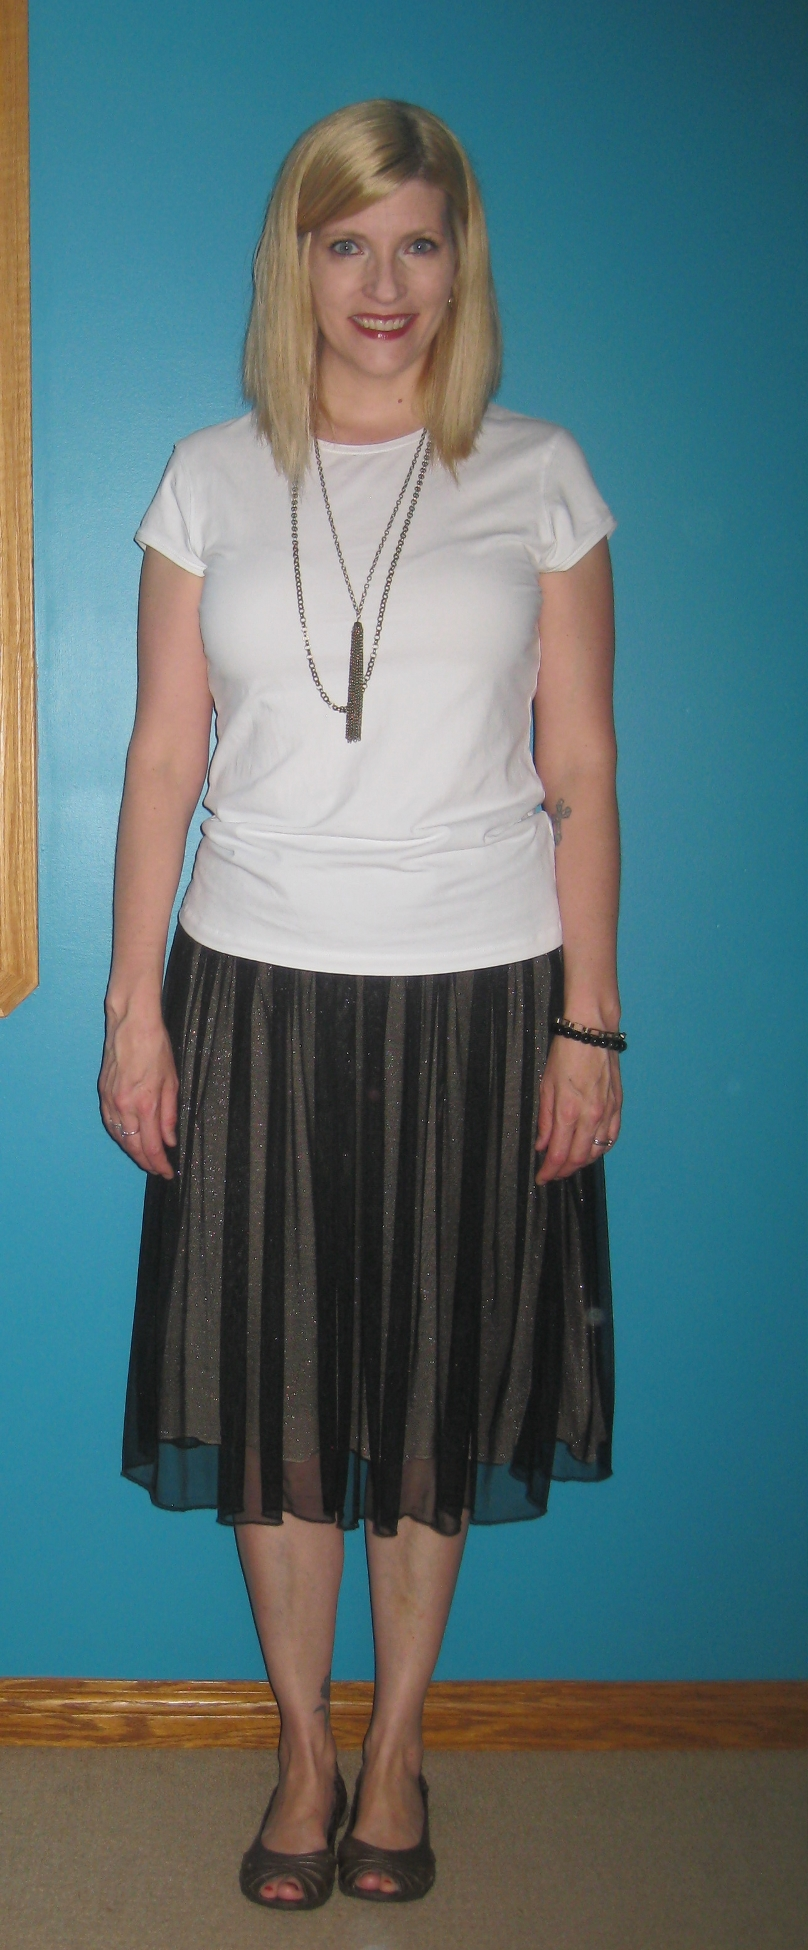 Tulle skirt $7, tee $3.50, Skechers metallic flats from my closet, secondhand necklace from school fundraiser